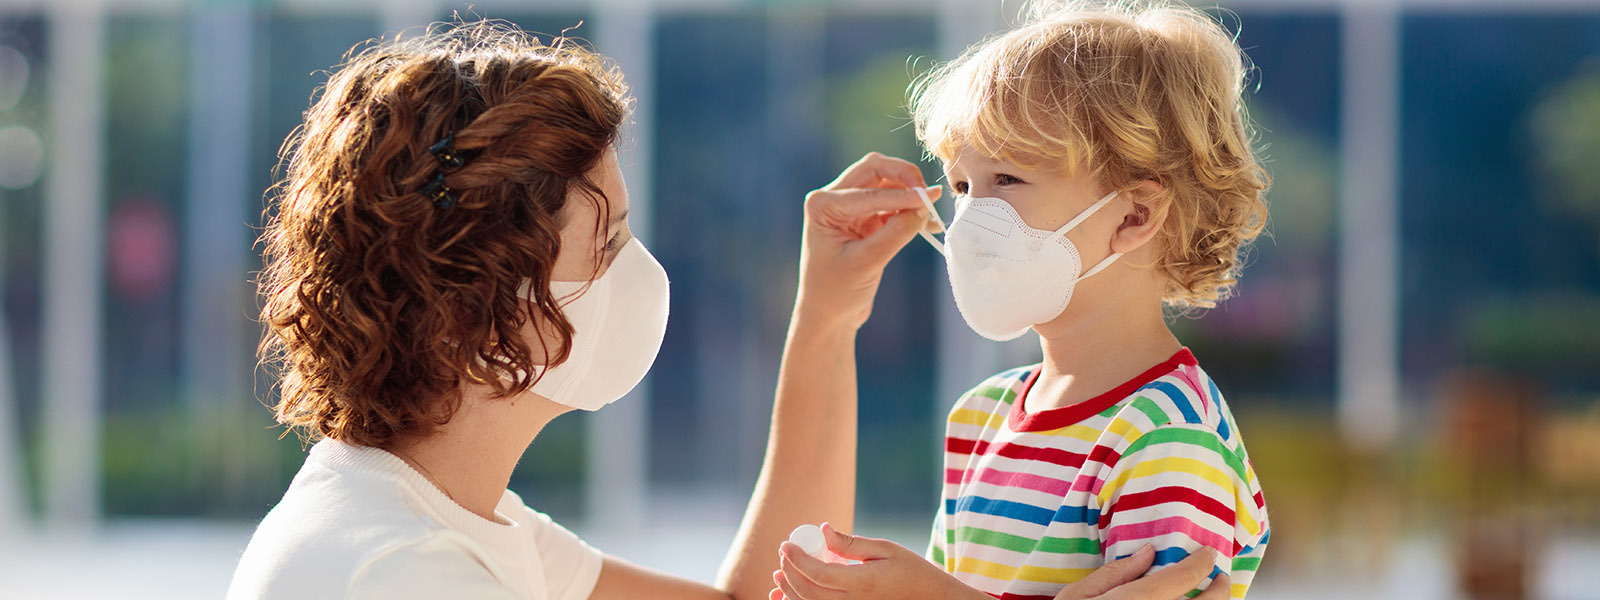 Image of a mother putting a mask on her child.